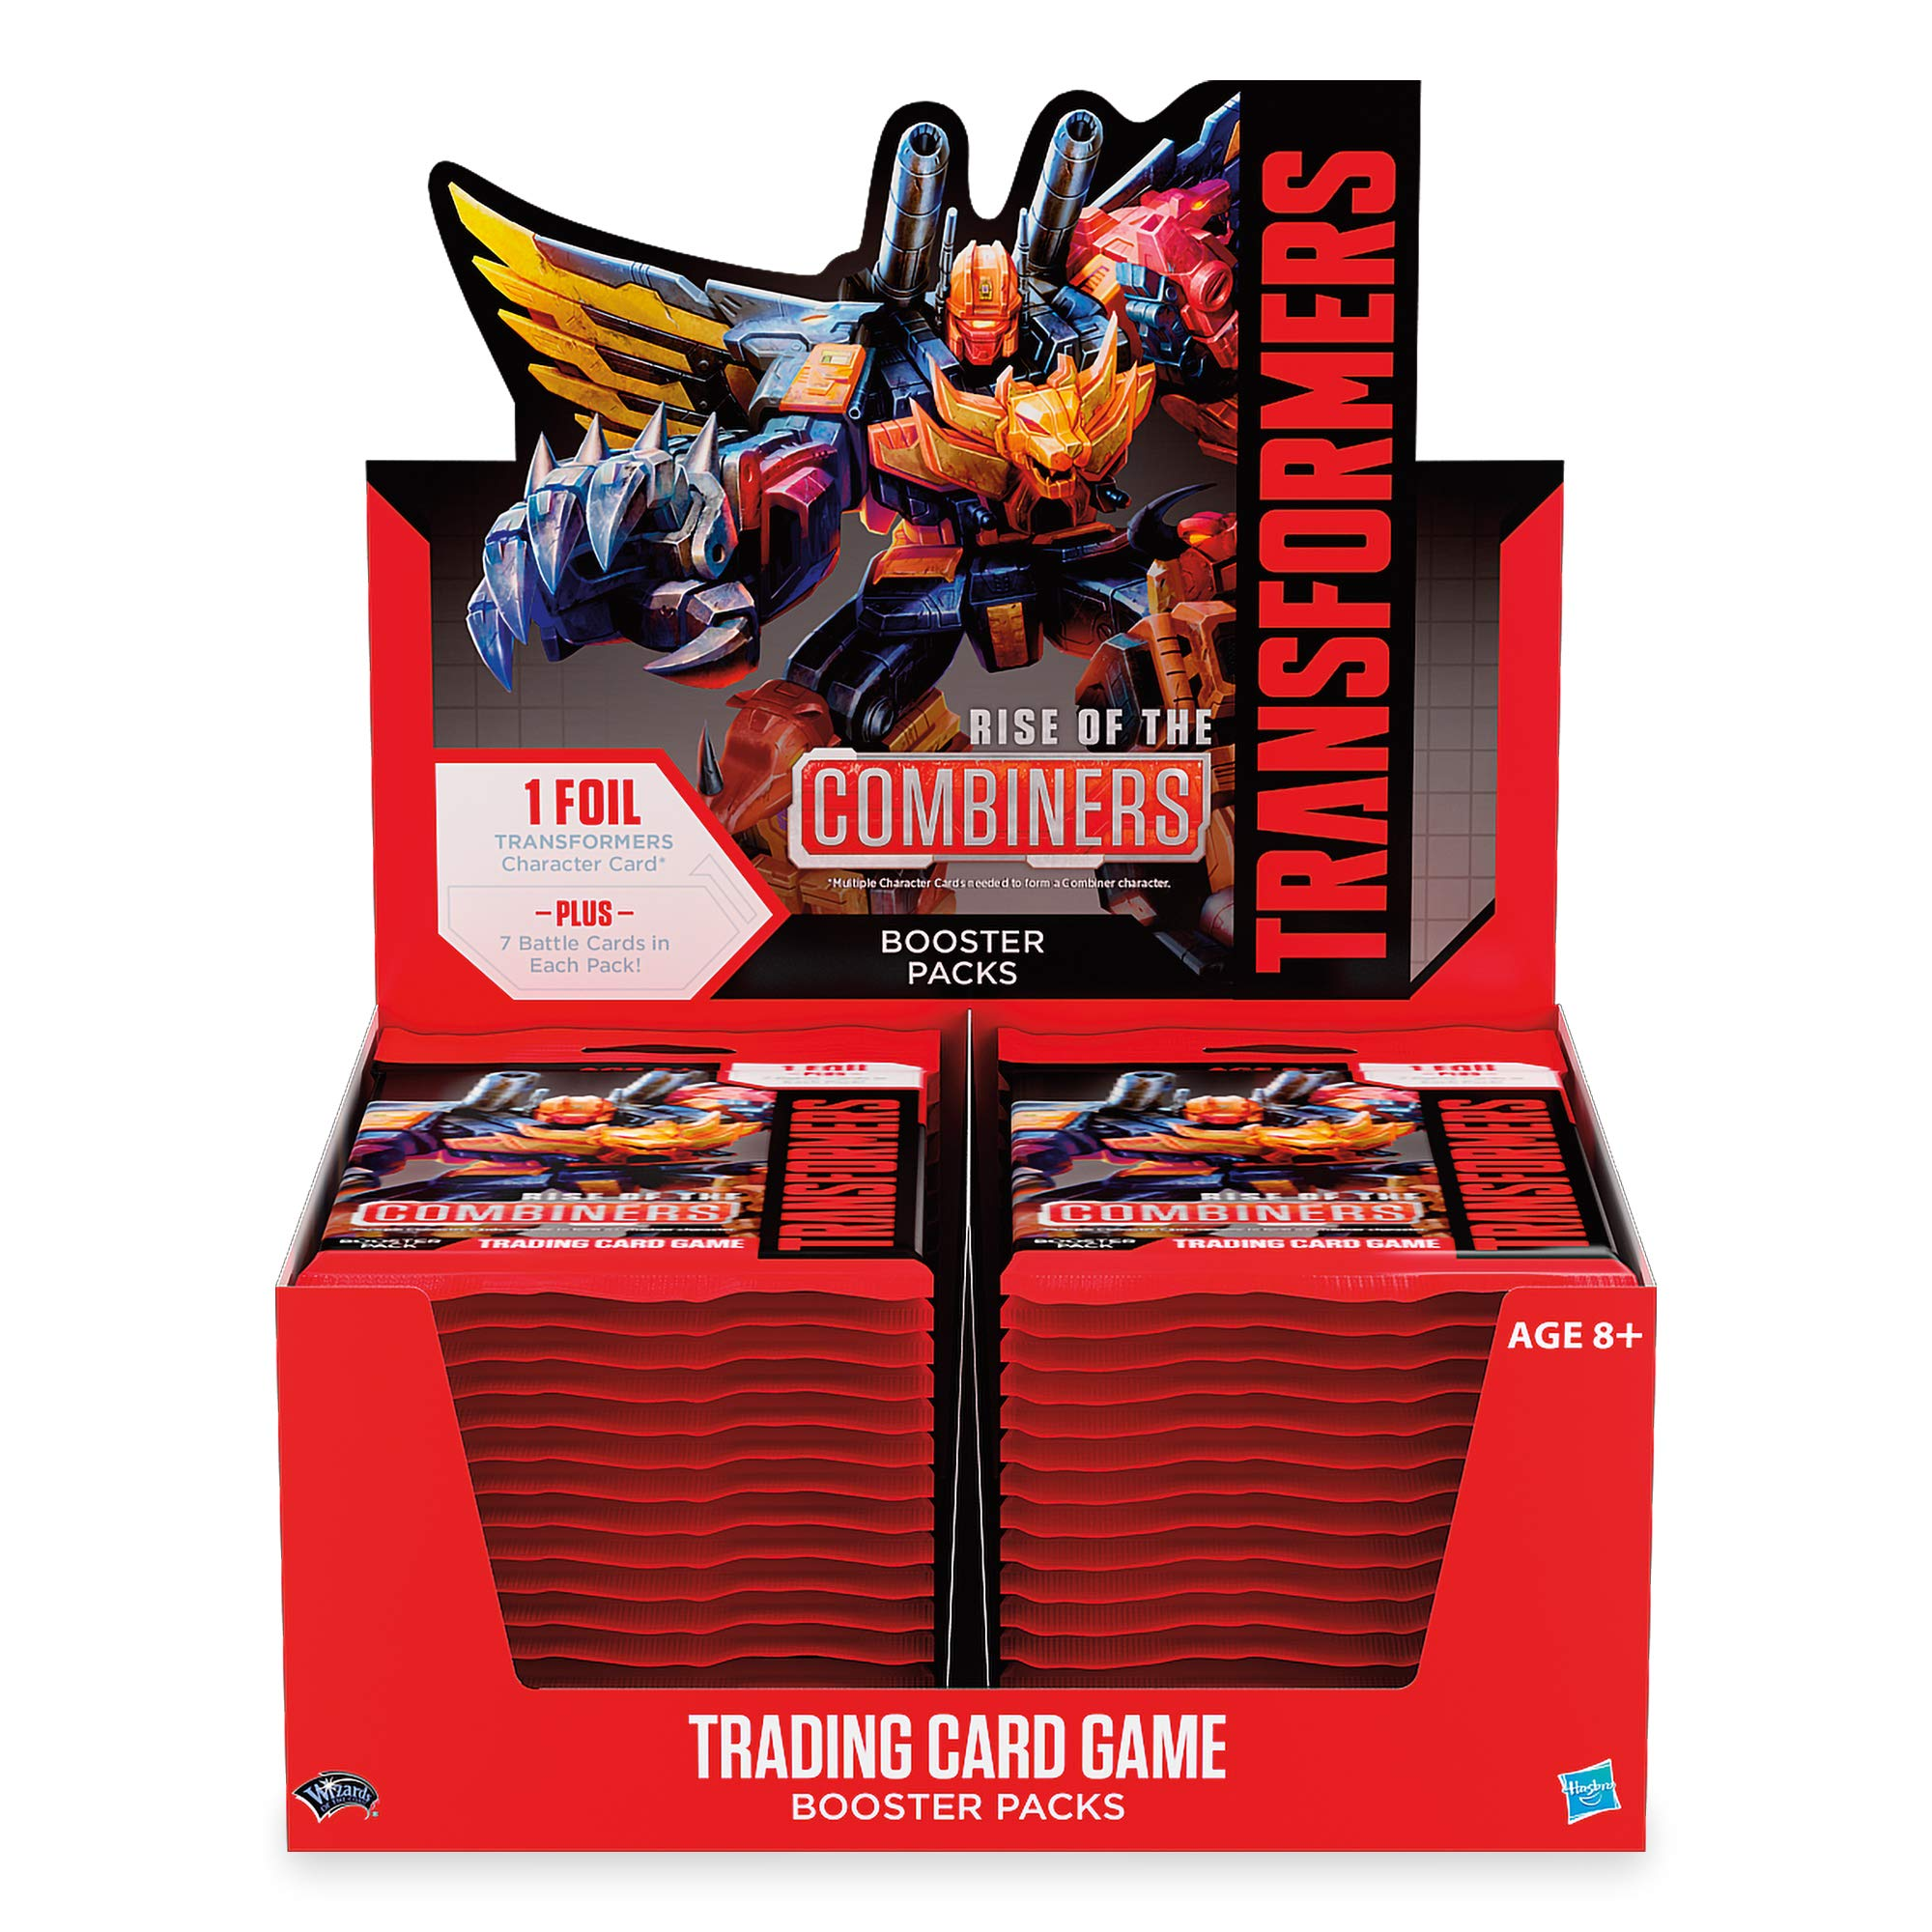 Transformers TCG: Rise of The Combiners Booster Box | 30 Booster Packs | 8 Transformers Cards Per Booster Pack by Transformers TCG (Image #3)